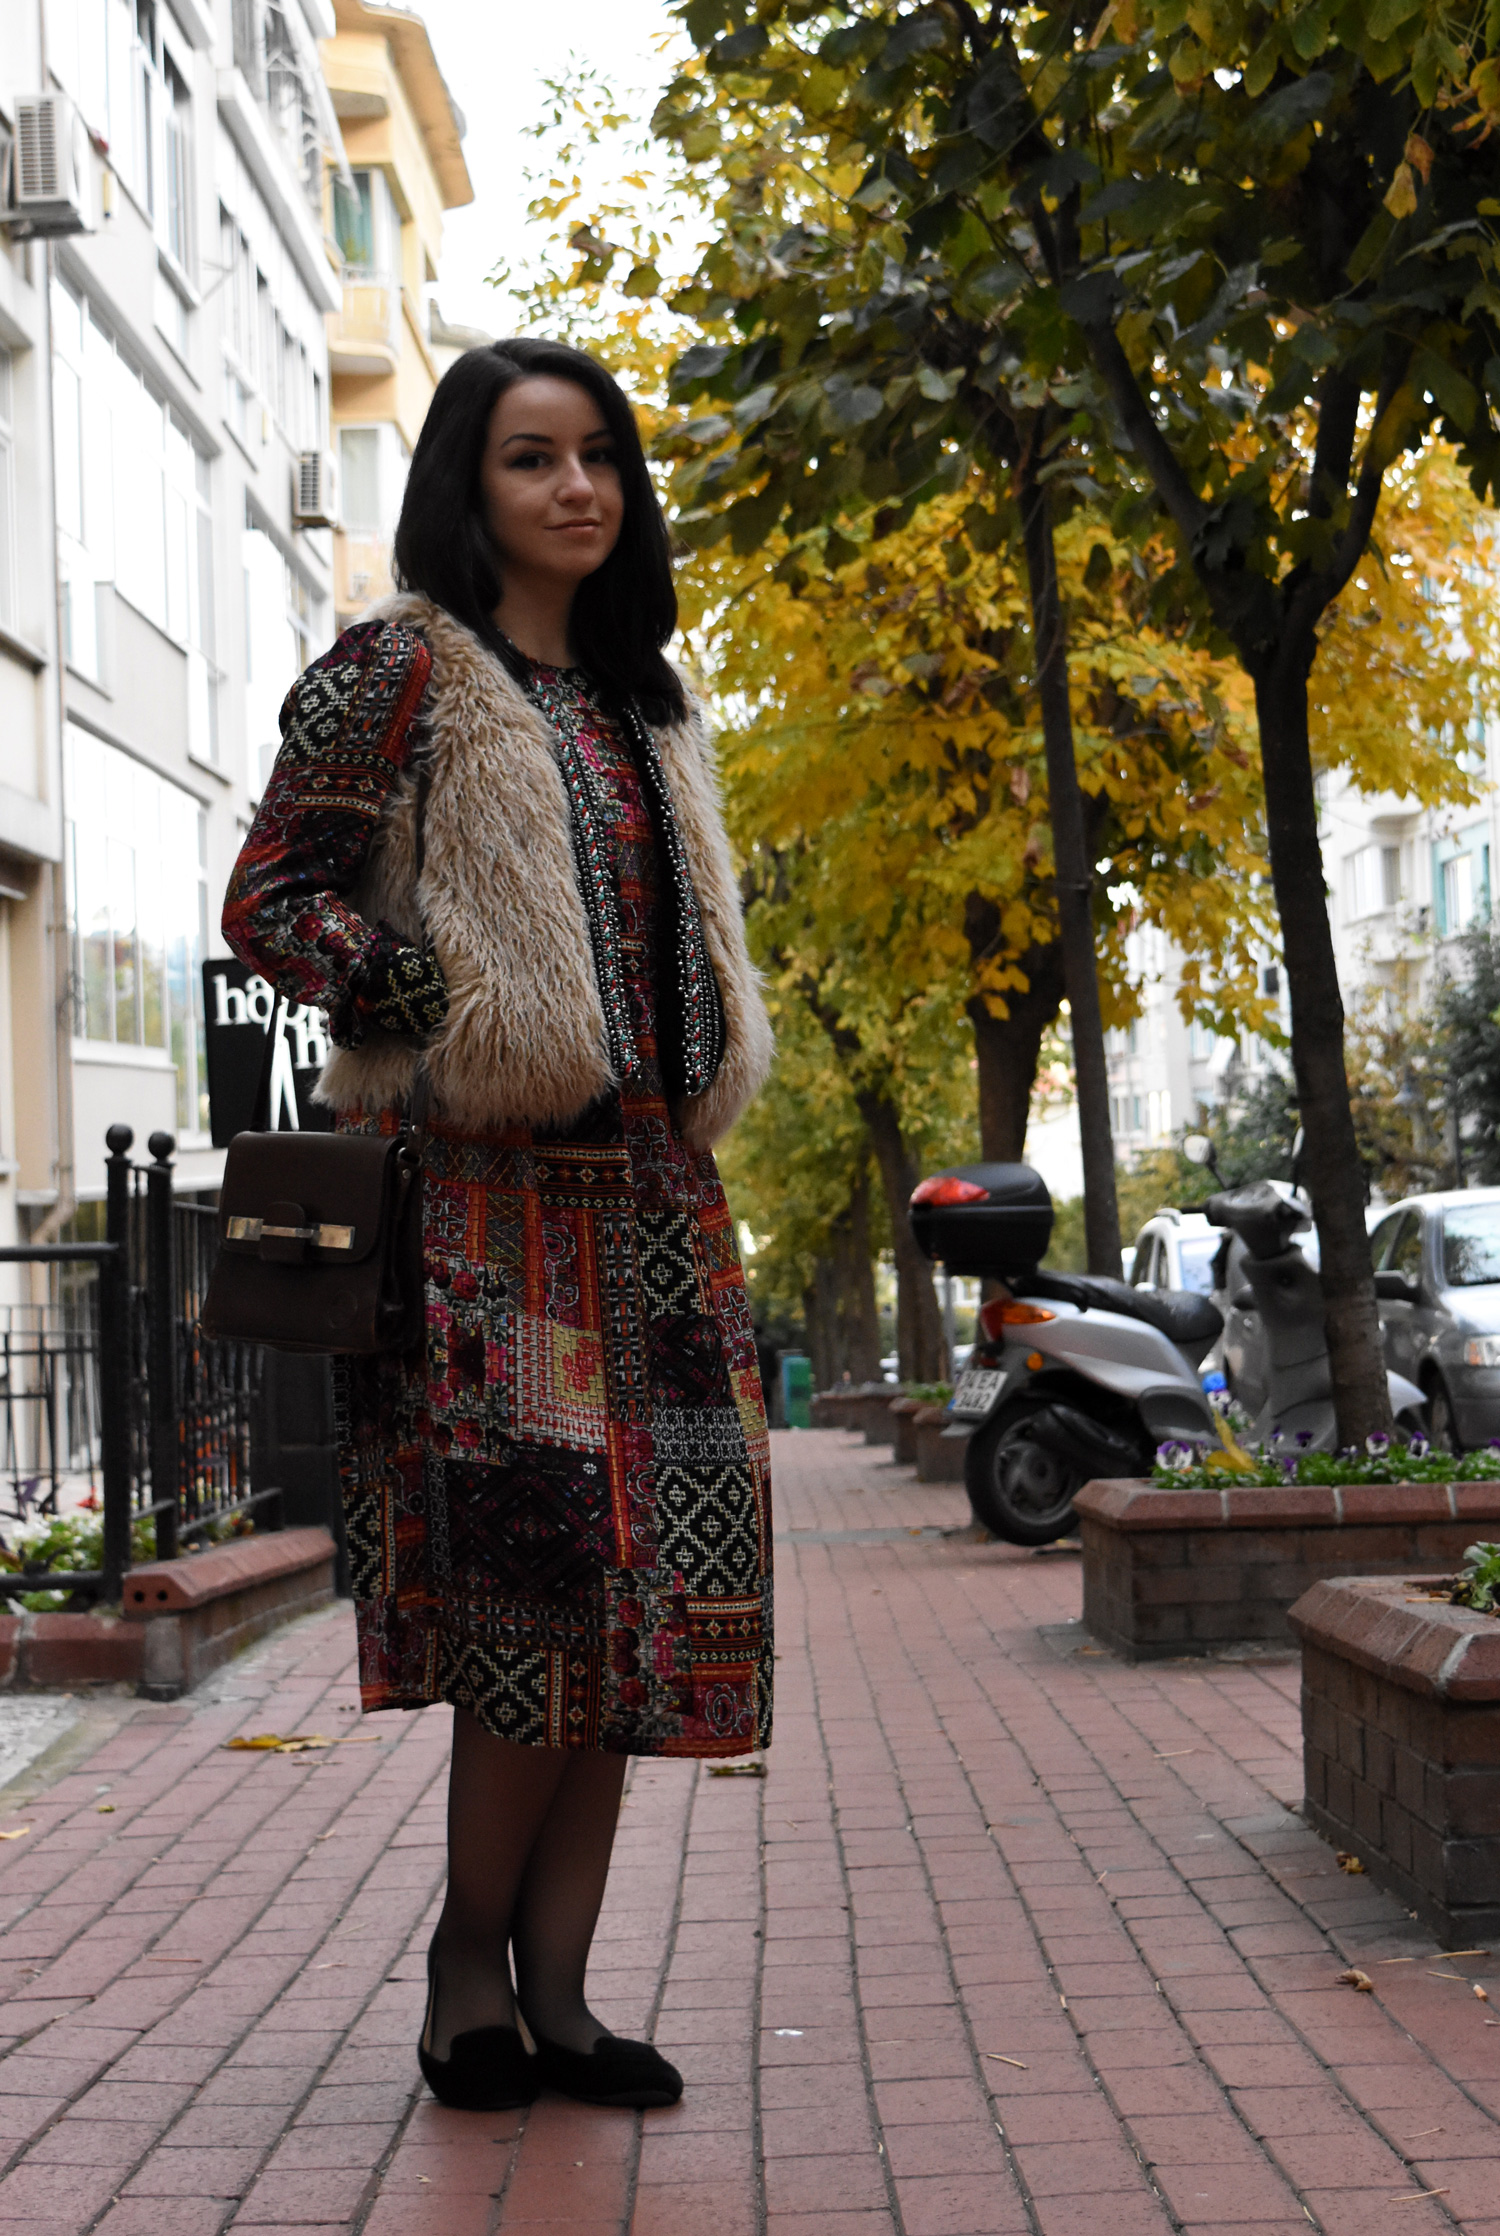 Weekend mode on-sevgin goktas ozsan-sevgingo-zara hm waistcoat patchwork dress DSC_2786